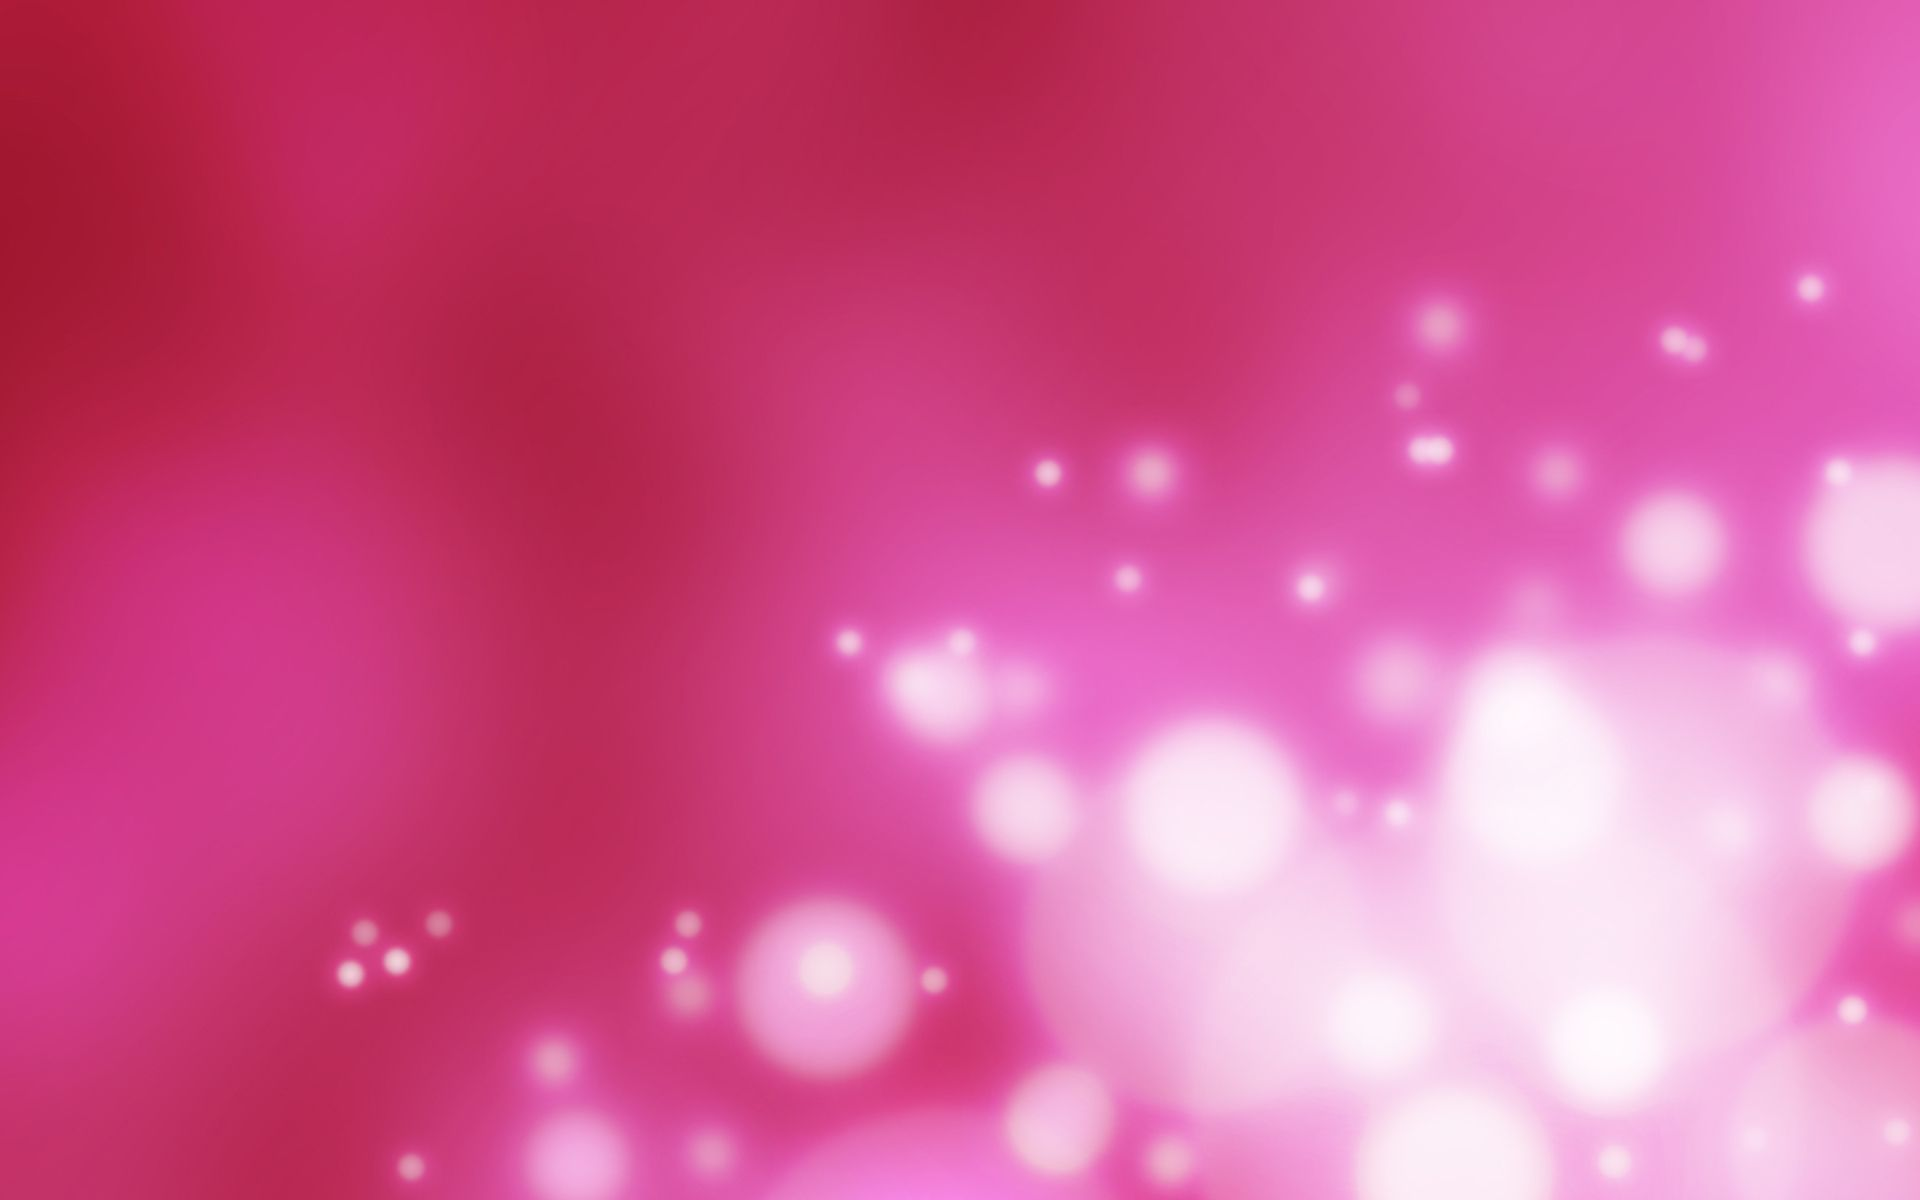 Pink Abstract Wallpapers HD Wallpapers Pulse 1920x1200